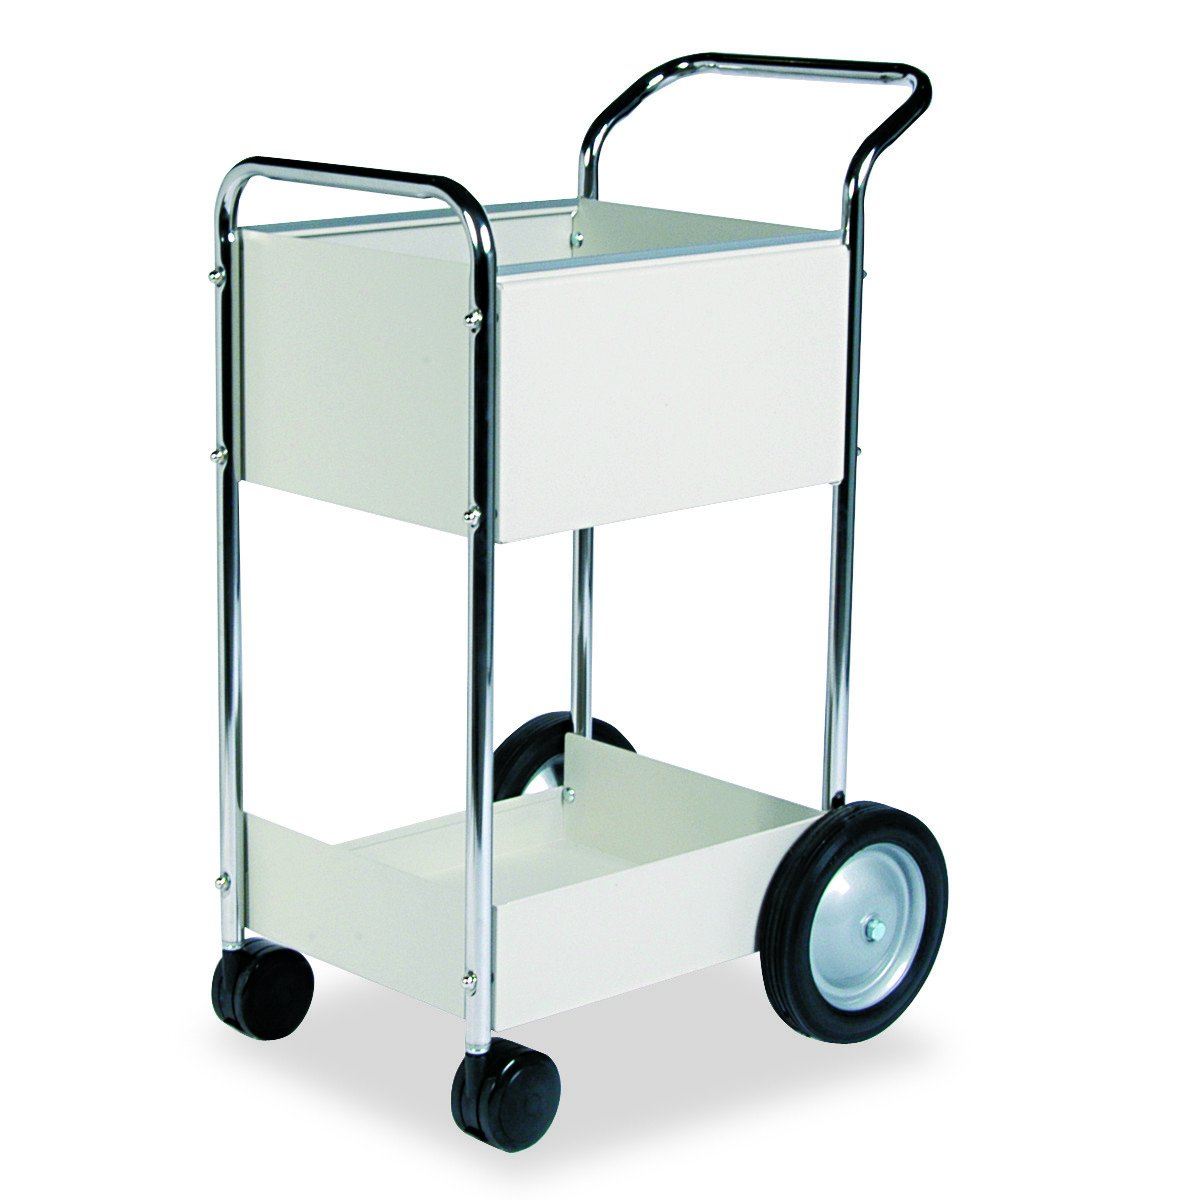 Fellowes 40924 Steel Mail Cart, 75-Folder Capacity, 20w x 25-1/2d x 39h, Dove Gray by Fellowes